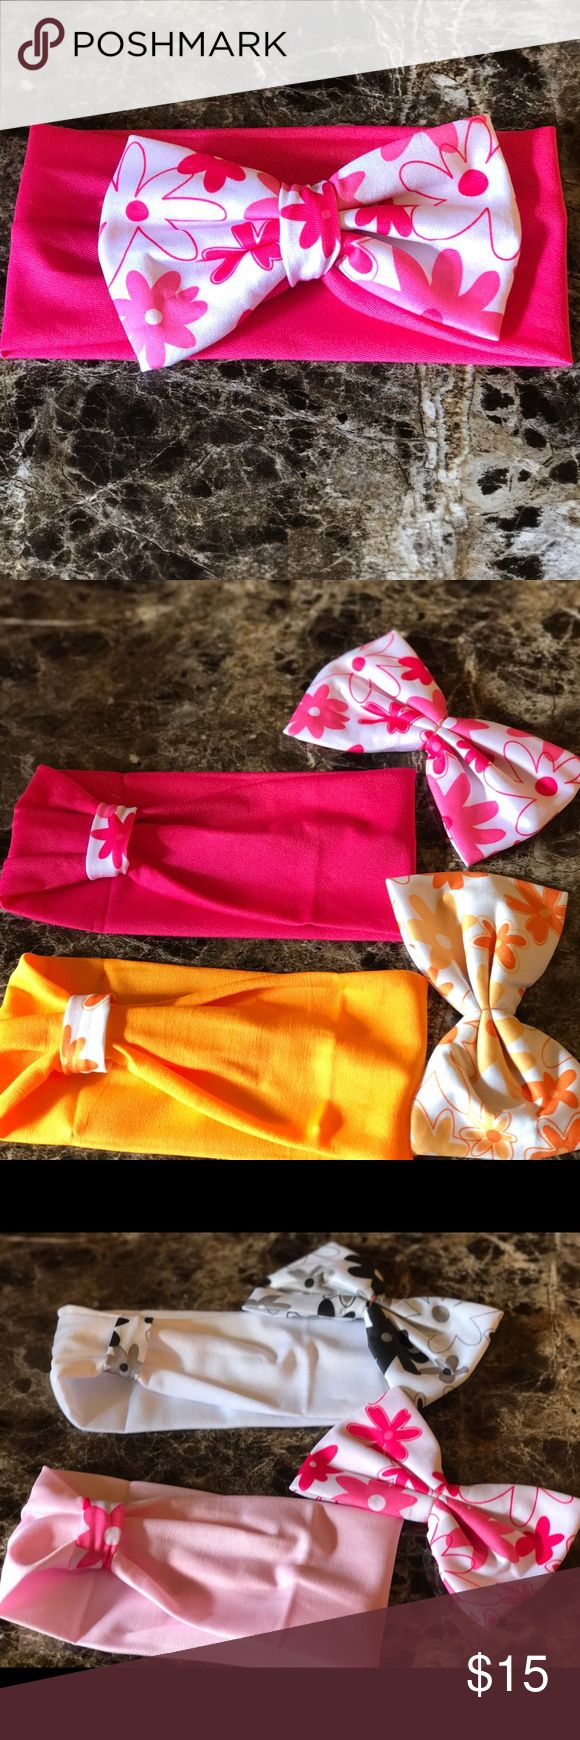 Baby head bands two way use Baby head band girl head band two way use         Can use with bow or with bow.    👌.               Price is for four head band hand made Accessories Hair Accessories